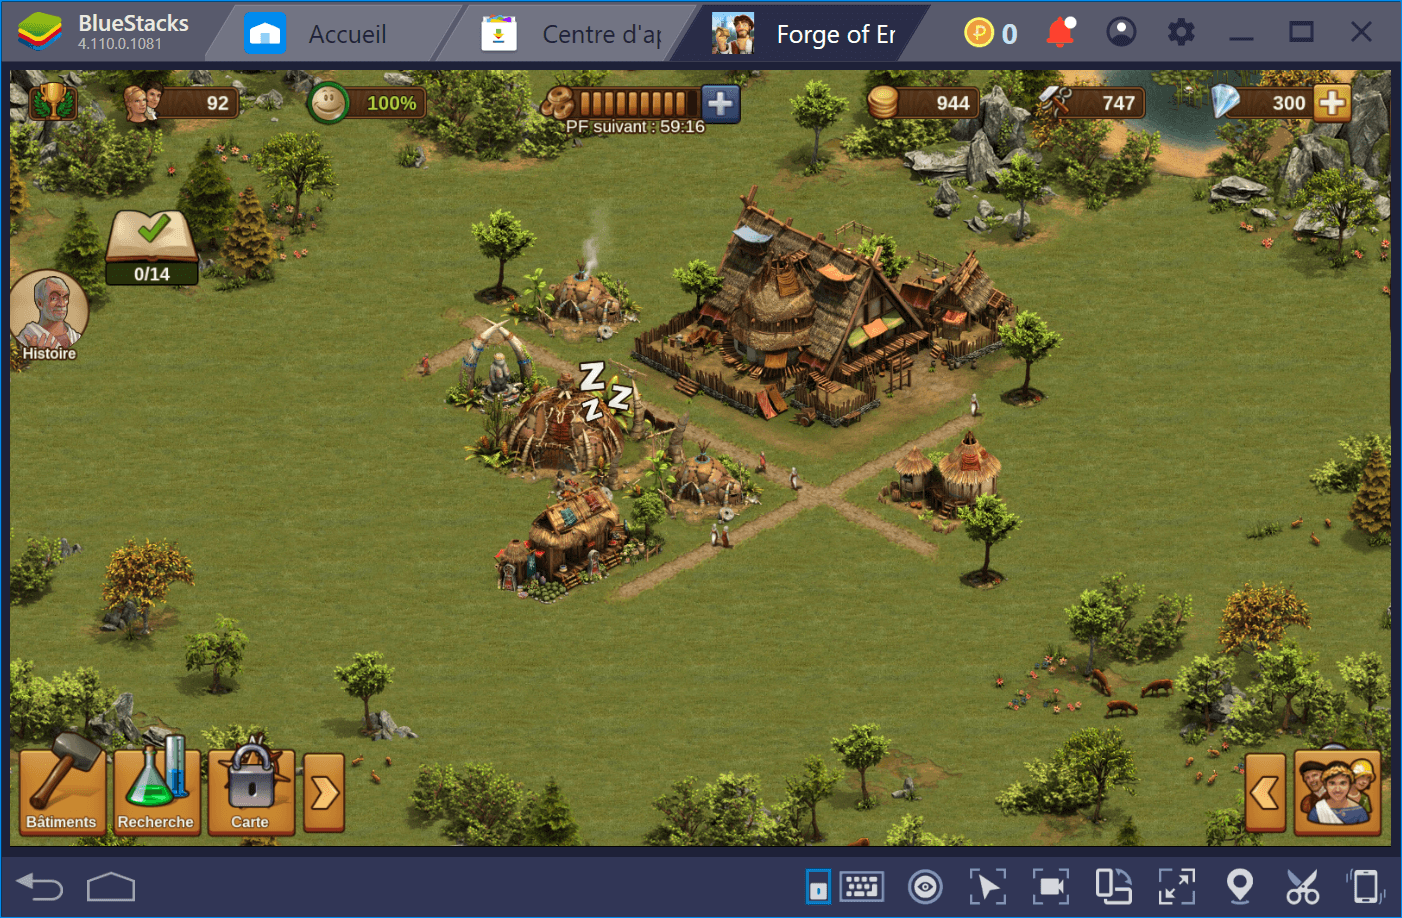 Guide BlueStacks pour Forge of Empires